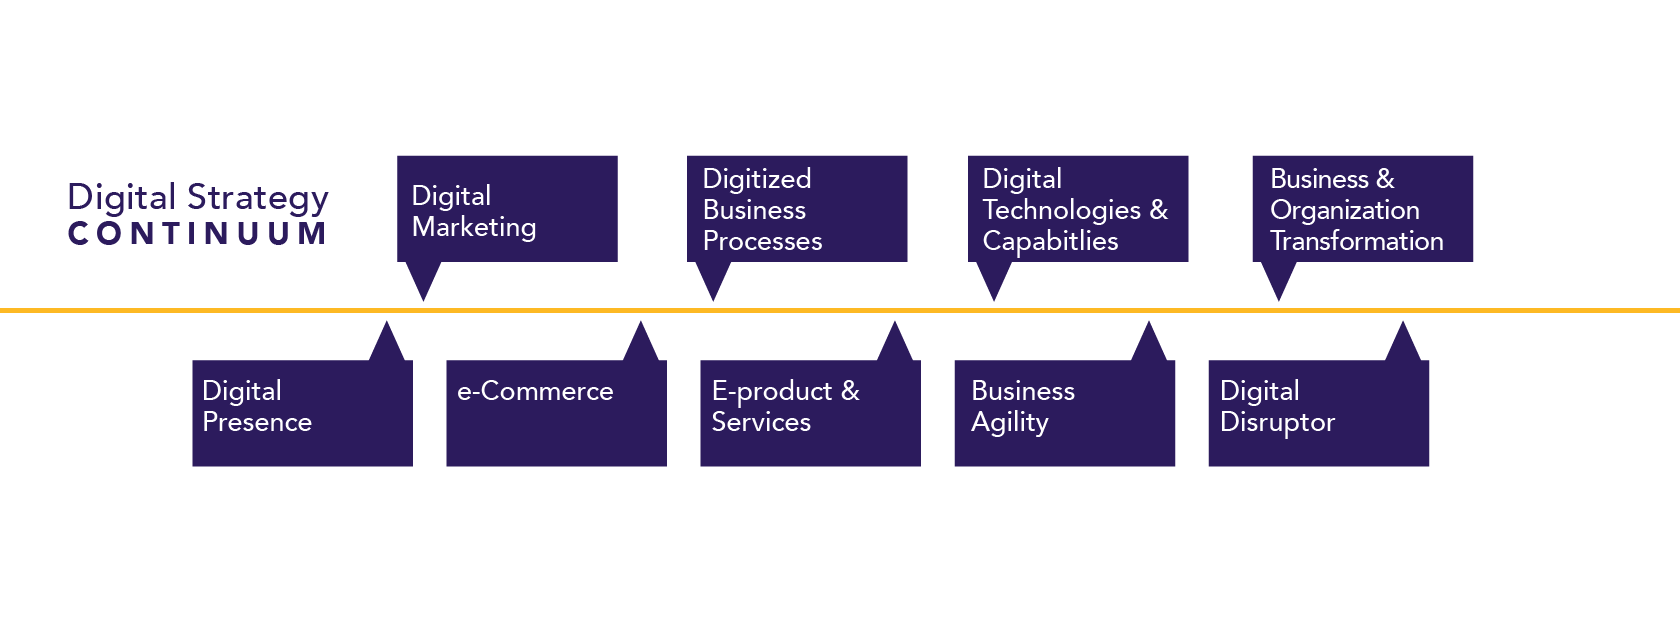 Digital Strategy Continuum